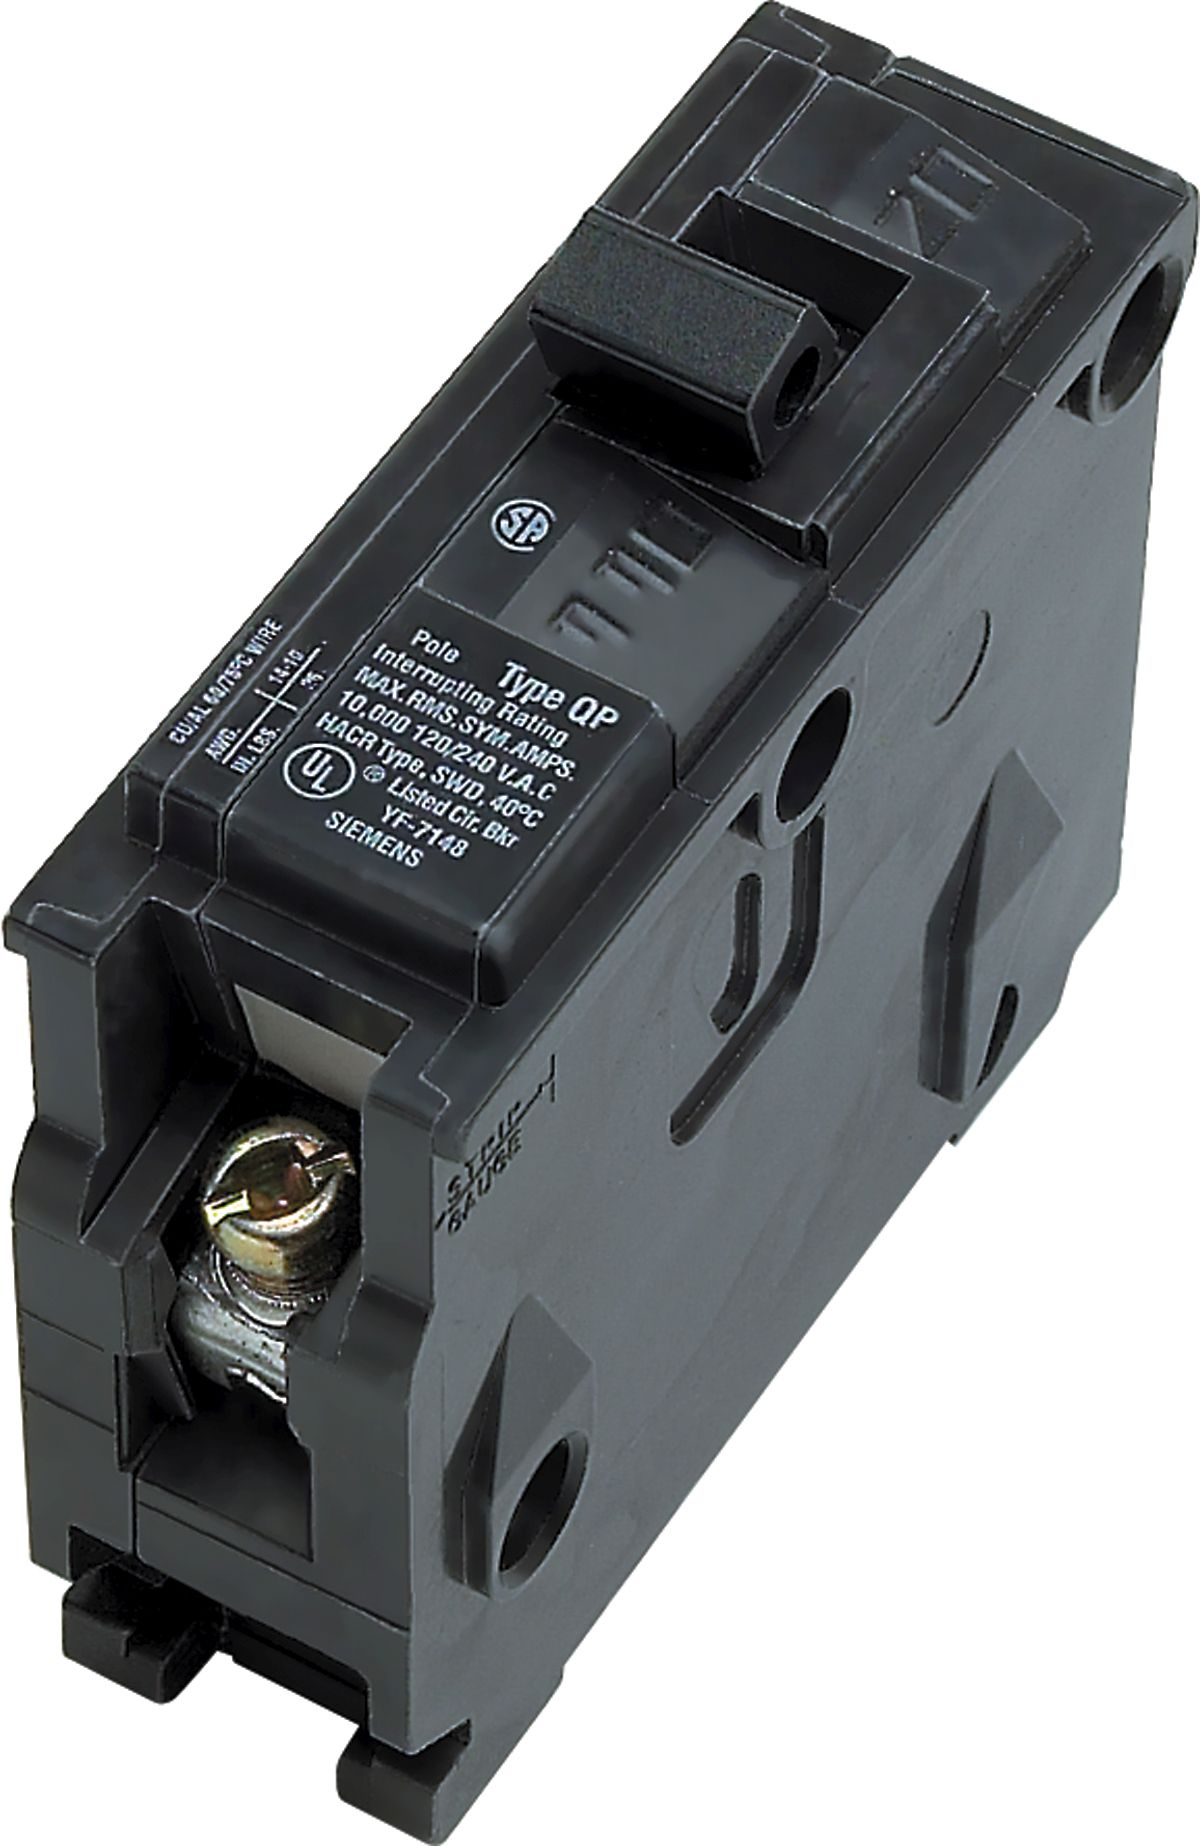 ITEQ115 Parallax Power Supply Circuit Breaker 15 Amps